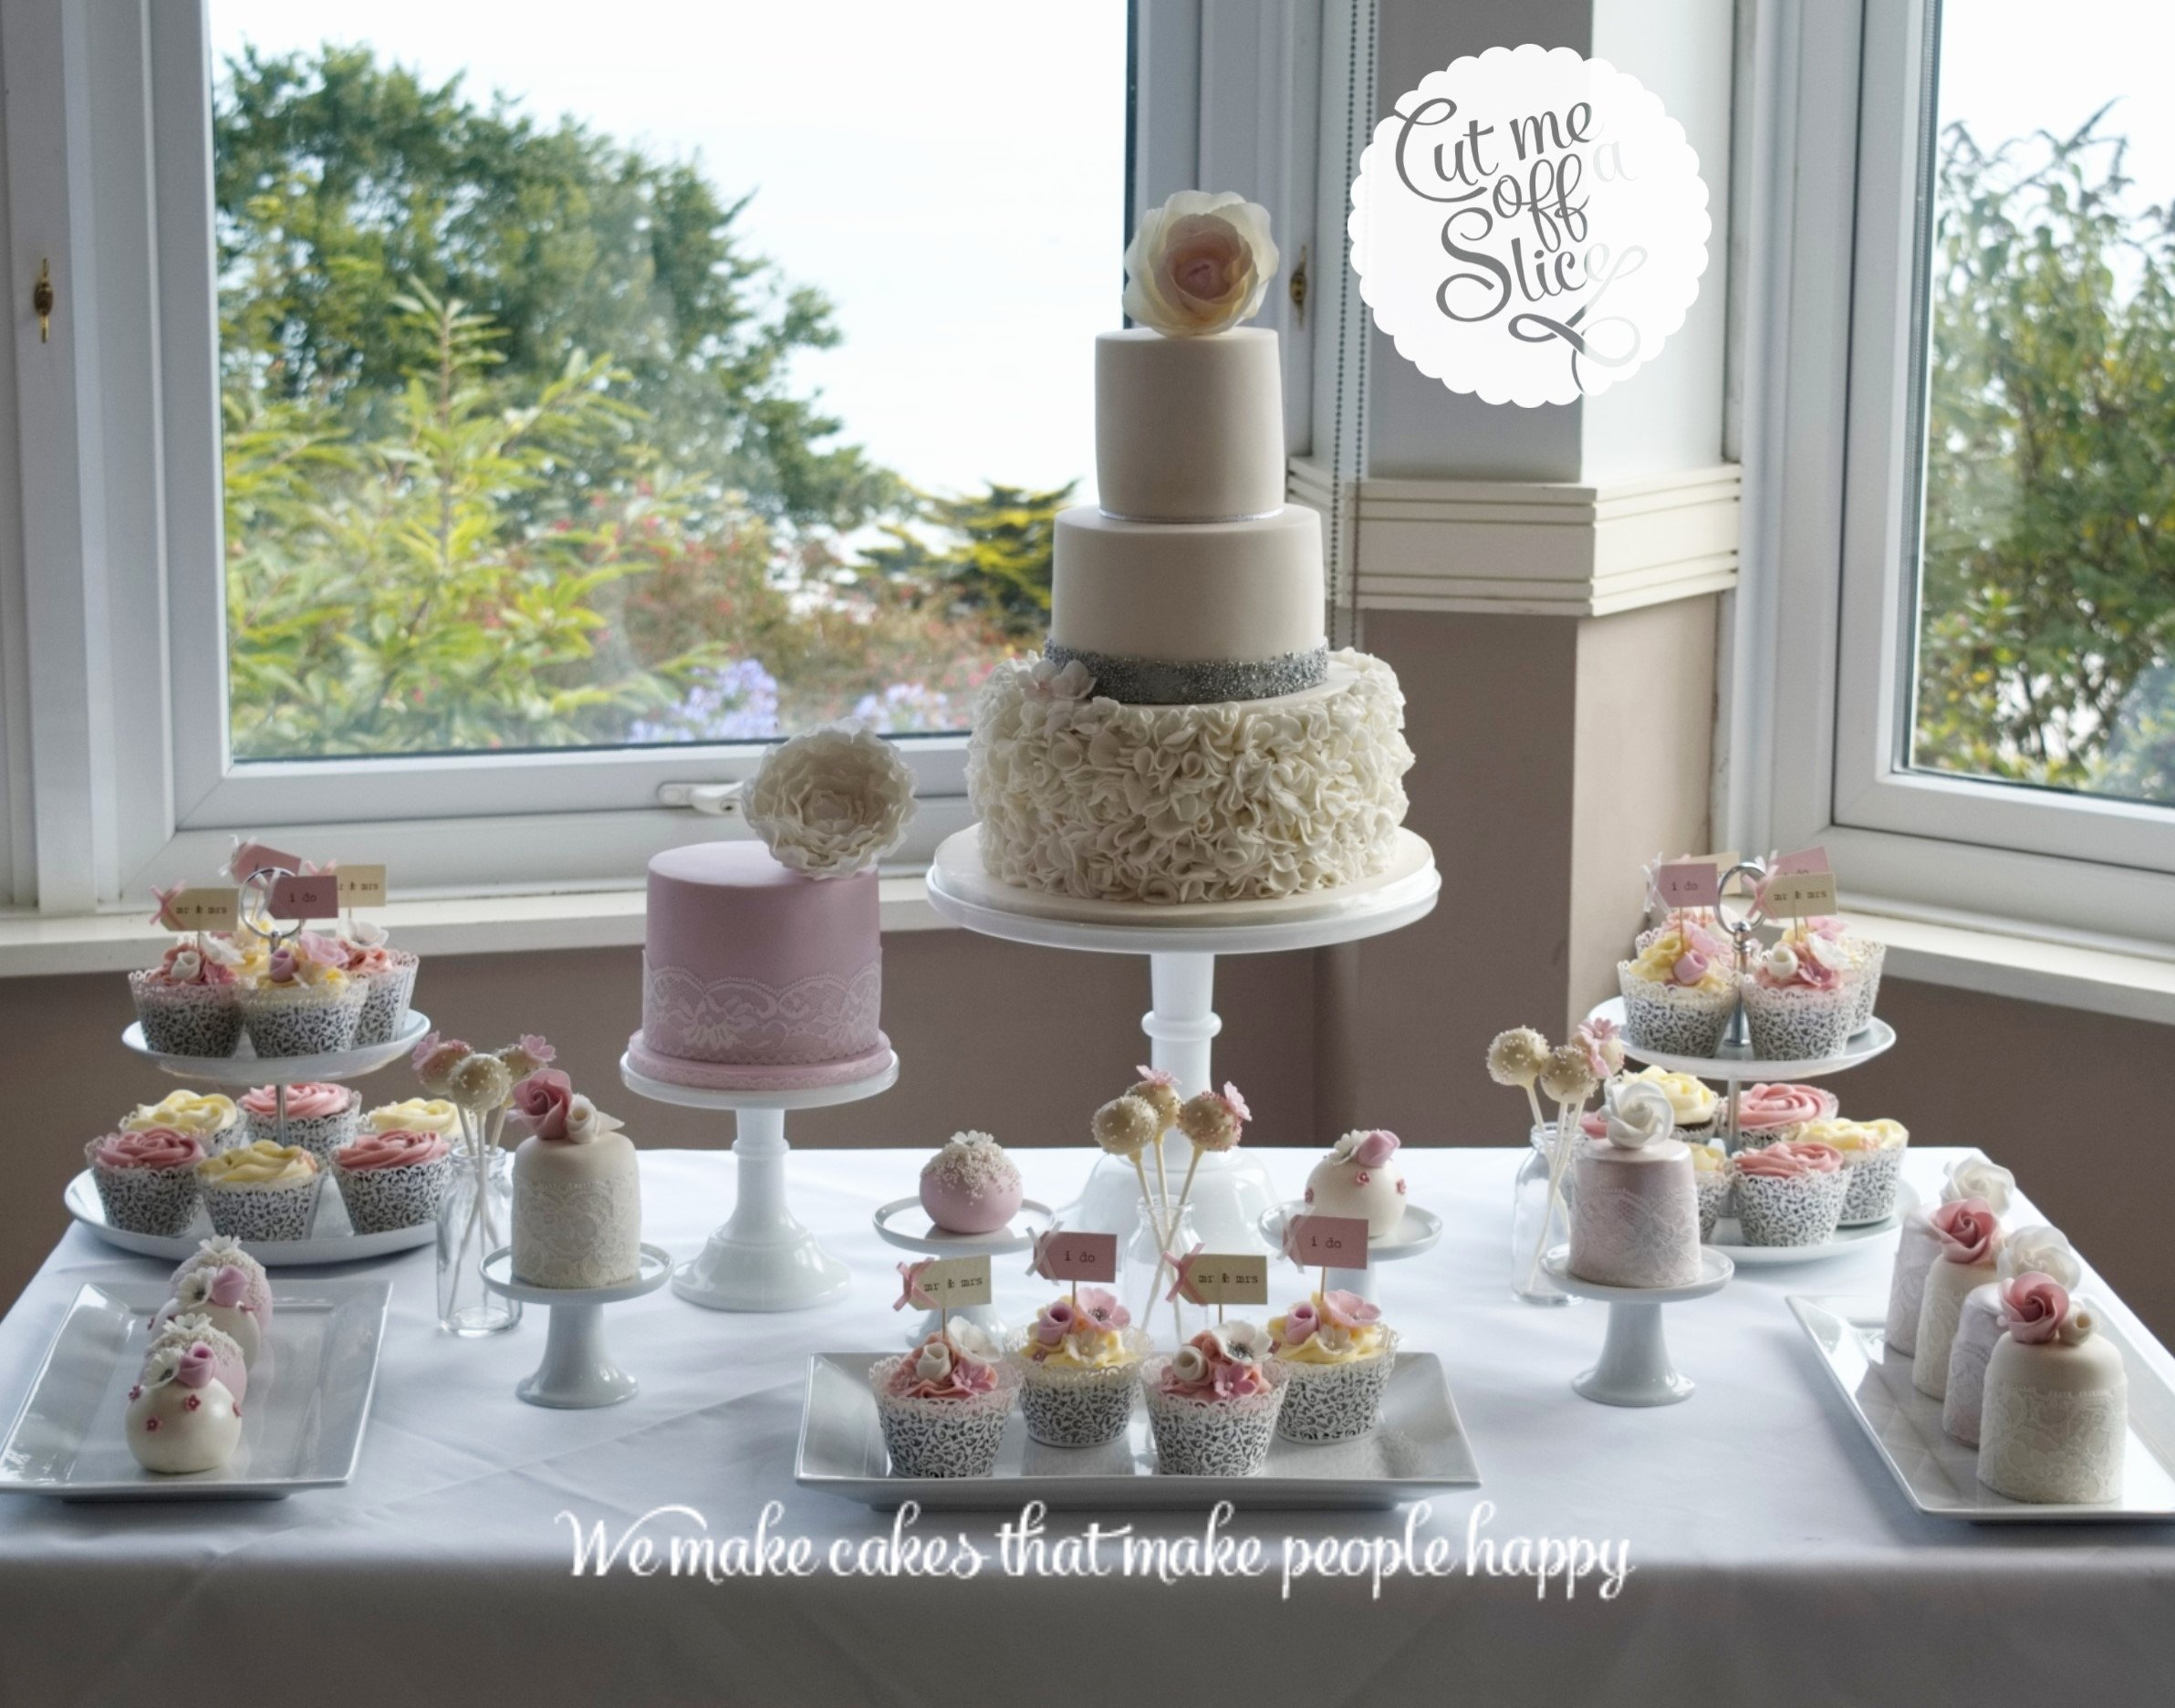 10 Wonderful Wedding Cake Table Decorations Ideas